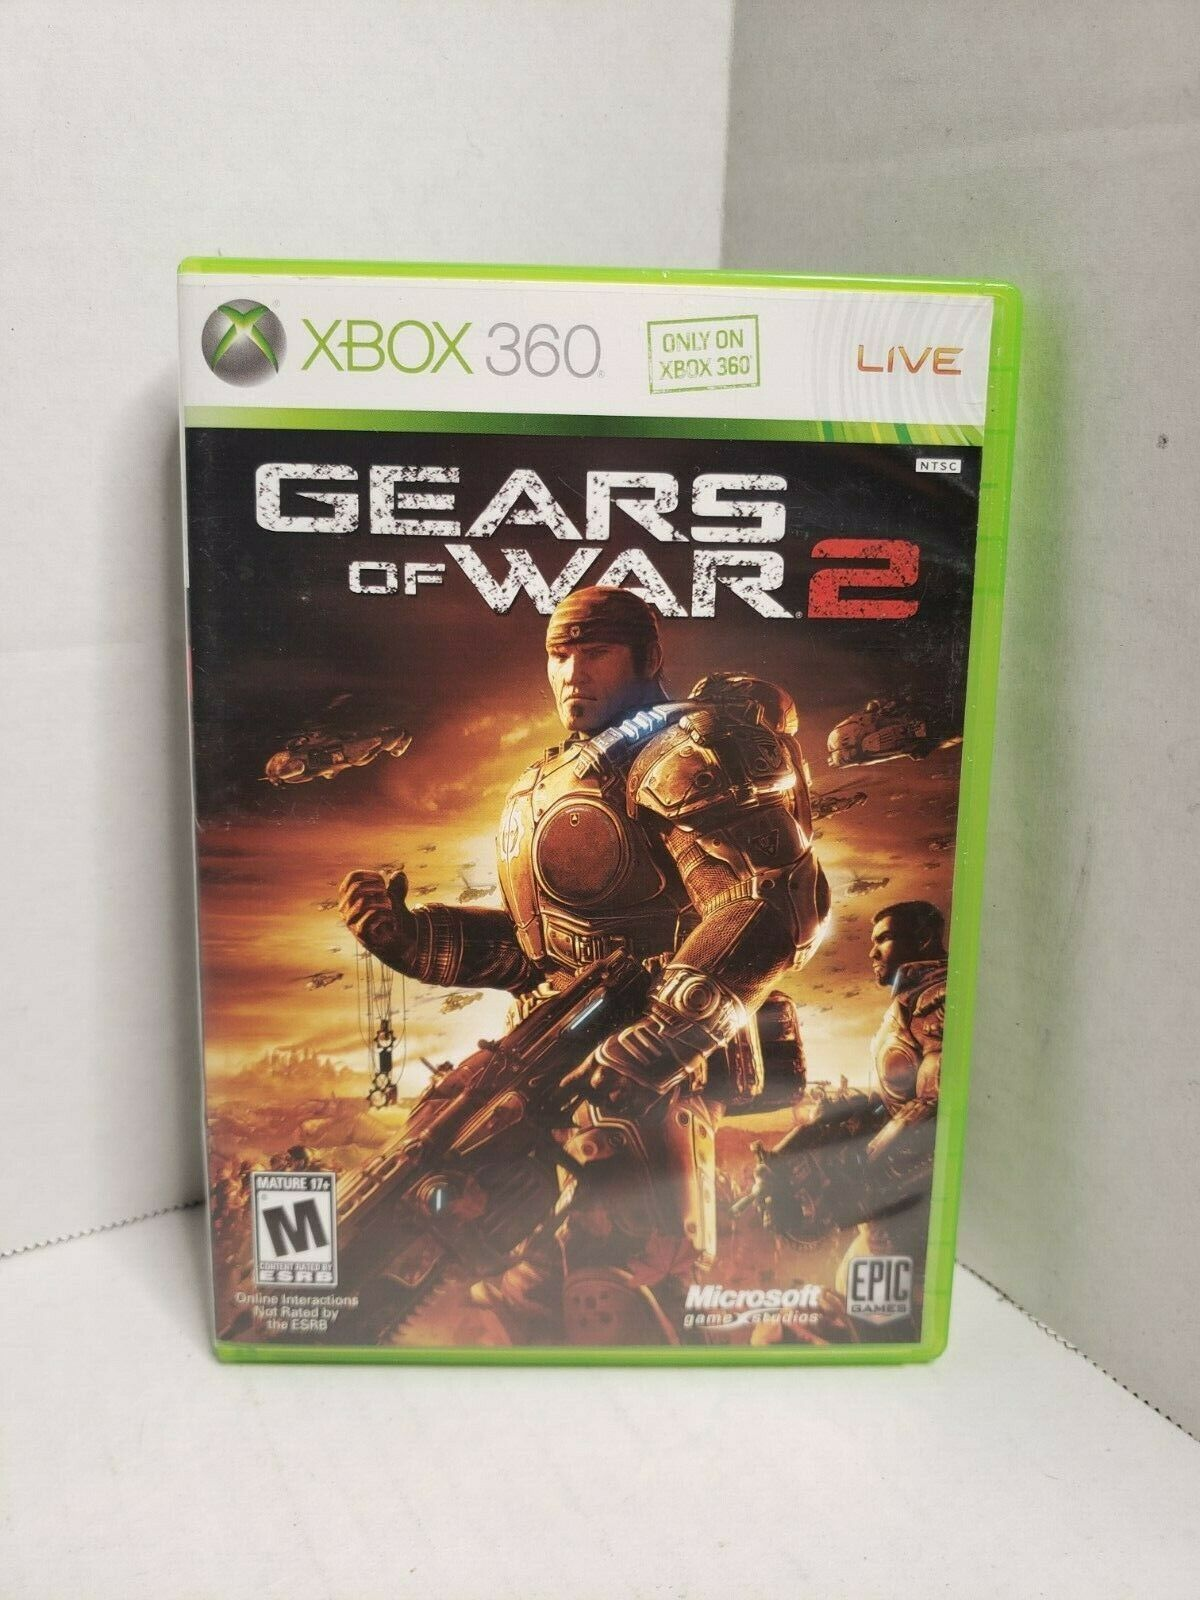 A1=Gears of War 2 (Microsoft Xbox 360, 2008) image 1